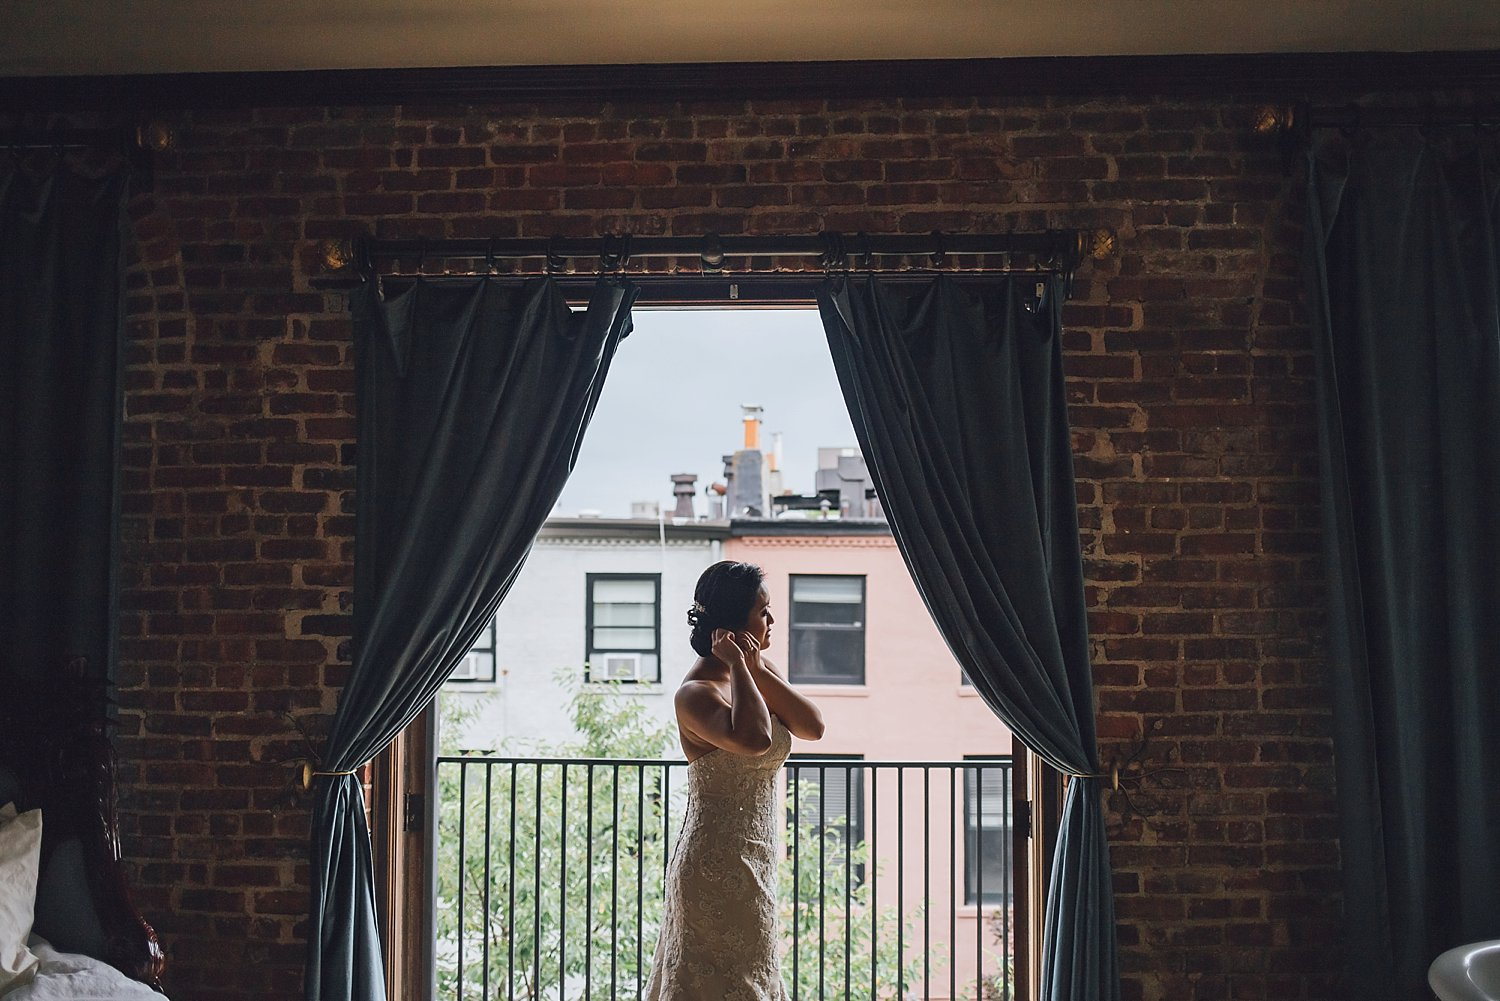 nyc-wedding-photography-nj-tri-state-cinematography-intothestory-by-moo-jae_0342.jpg